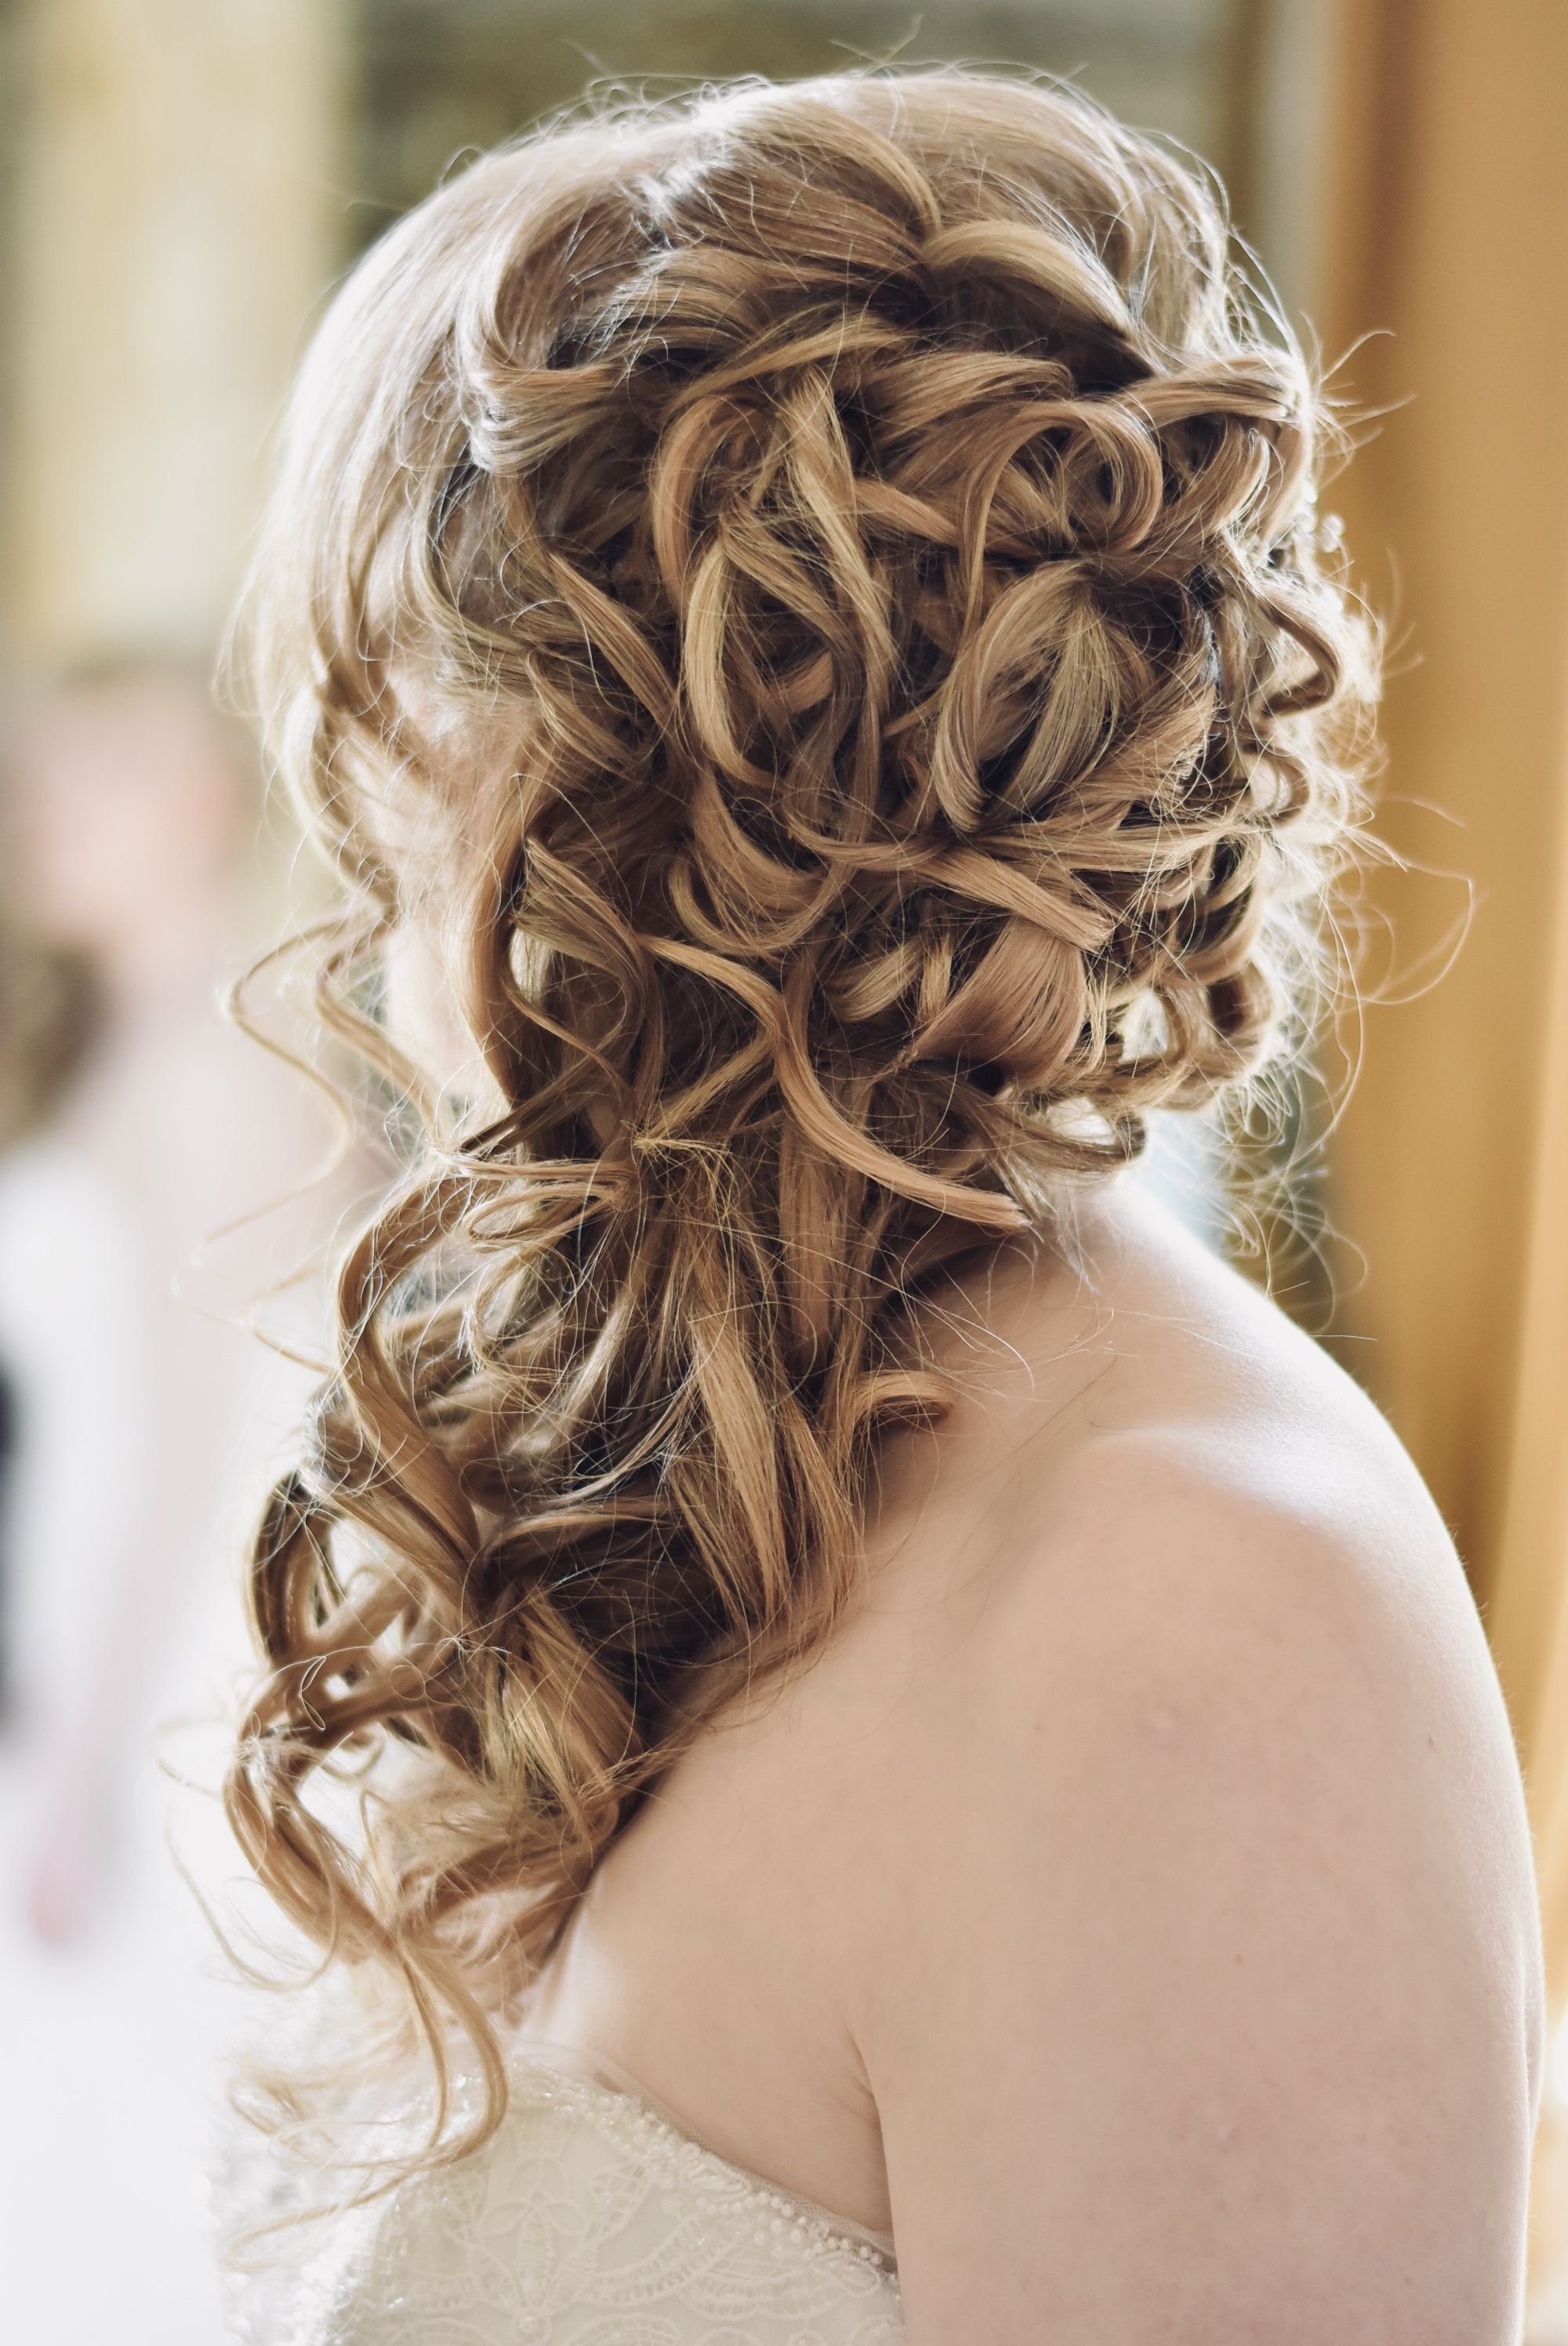 Wedding Hairstyles Beautiful Romantic Half Up Over The Shoulder Hair Styles Wedding Hairstyles Wedding Hair And Makeup